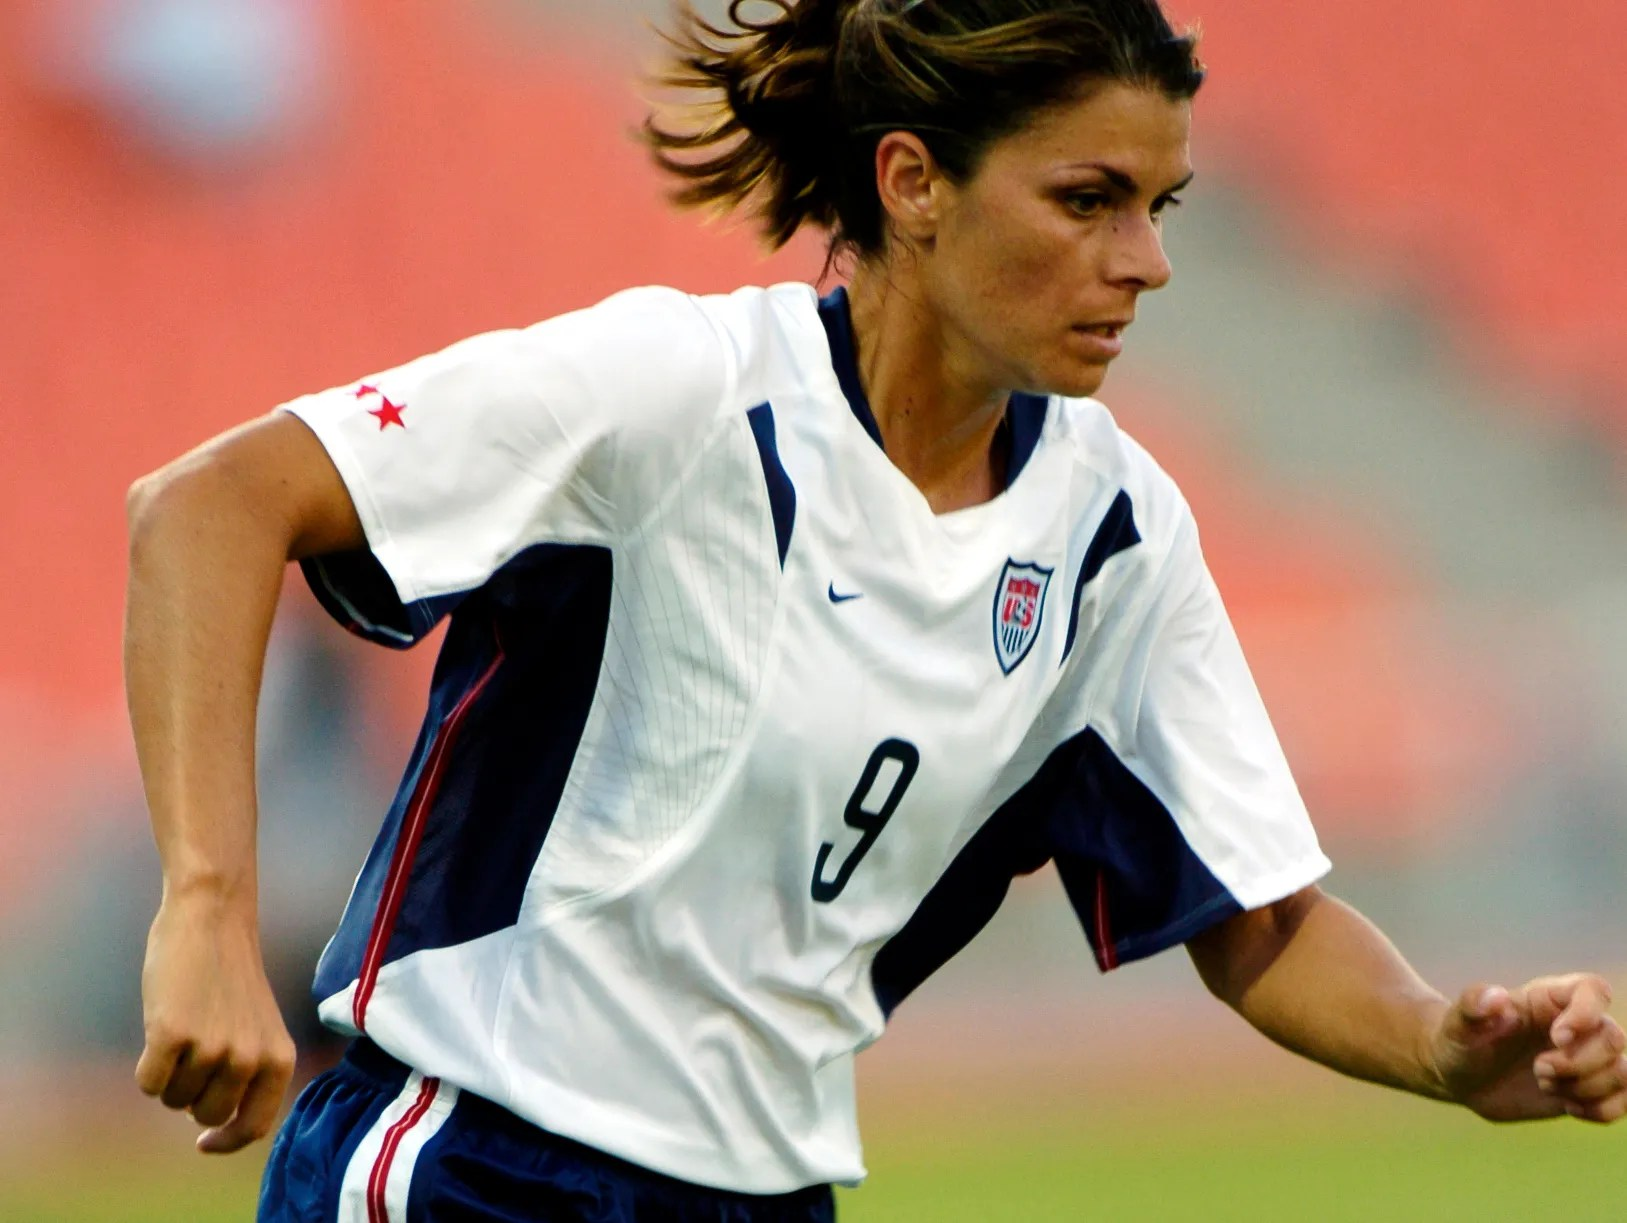 f0511e0c390 Mia Hamm coming to Salem for Statesman Journal Sports Awards